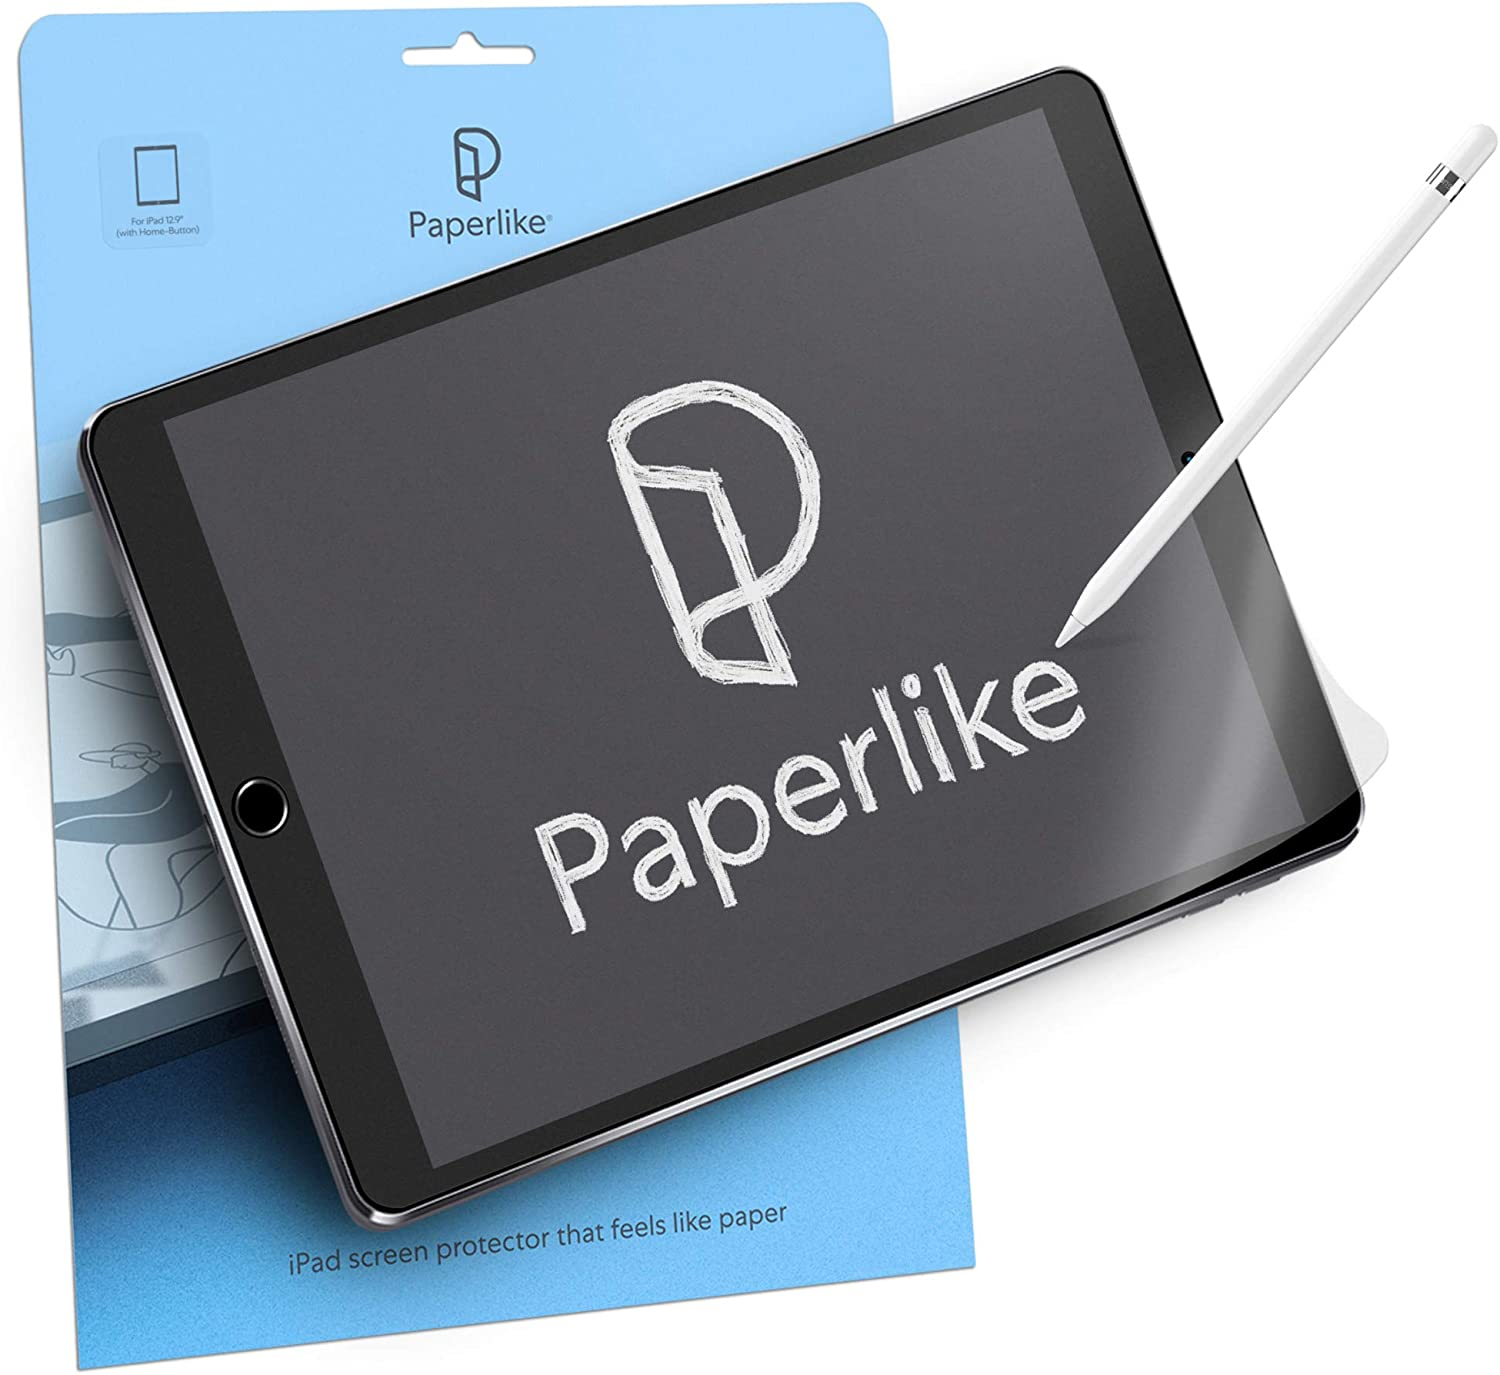 Max 43% OFF Paperlike 2 Pieces for iPad Pro But Home Inch 12.9 2017 with Same day shipping